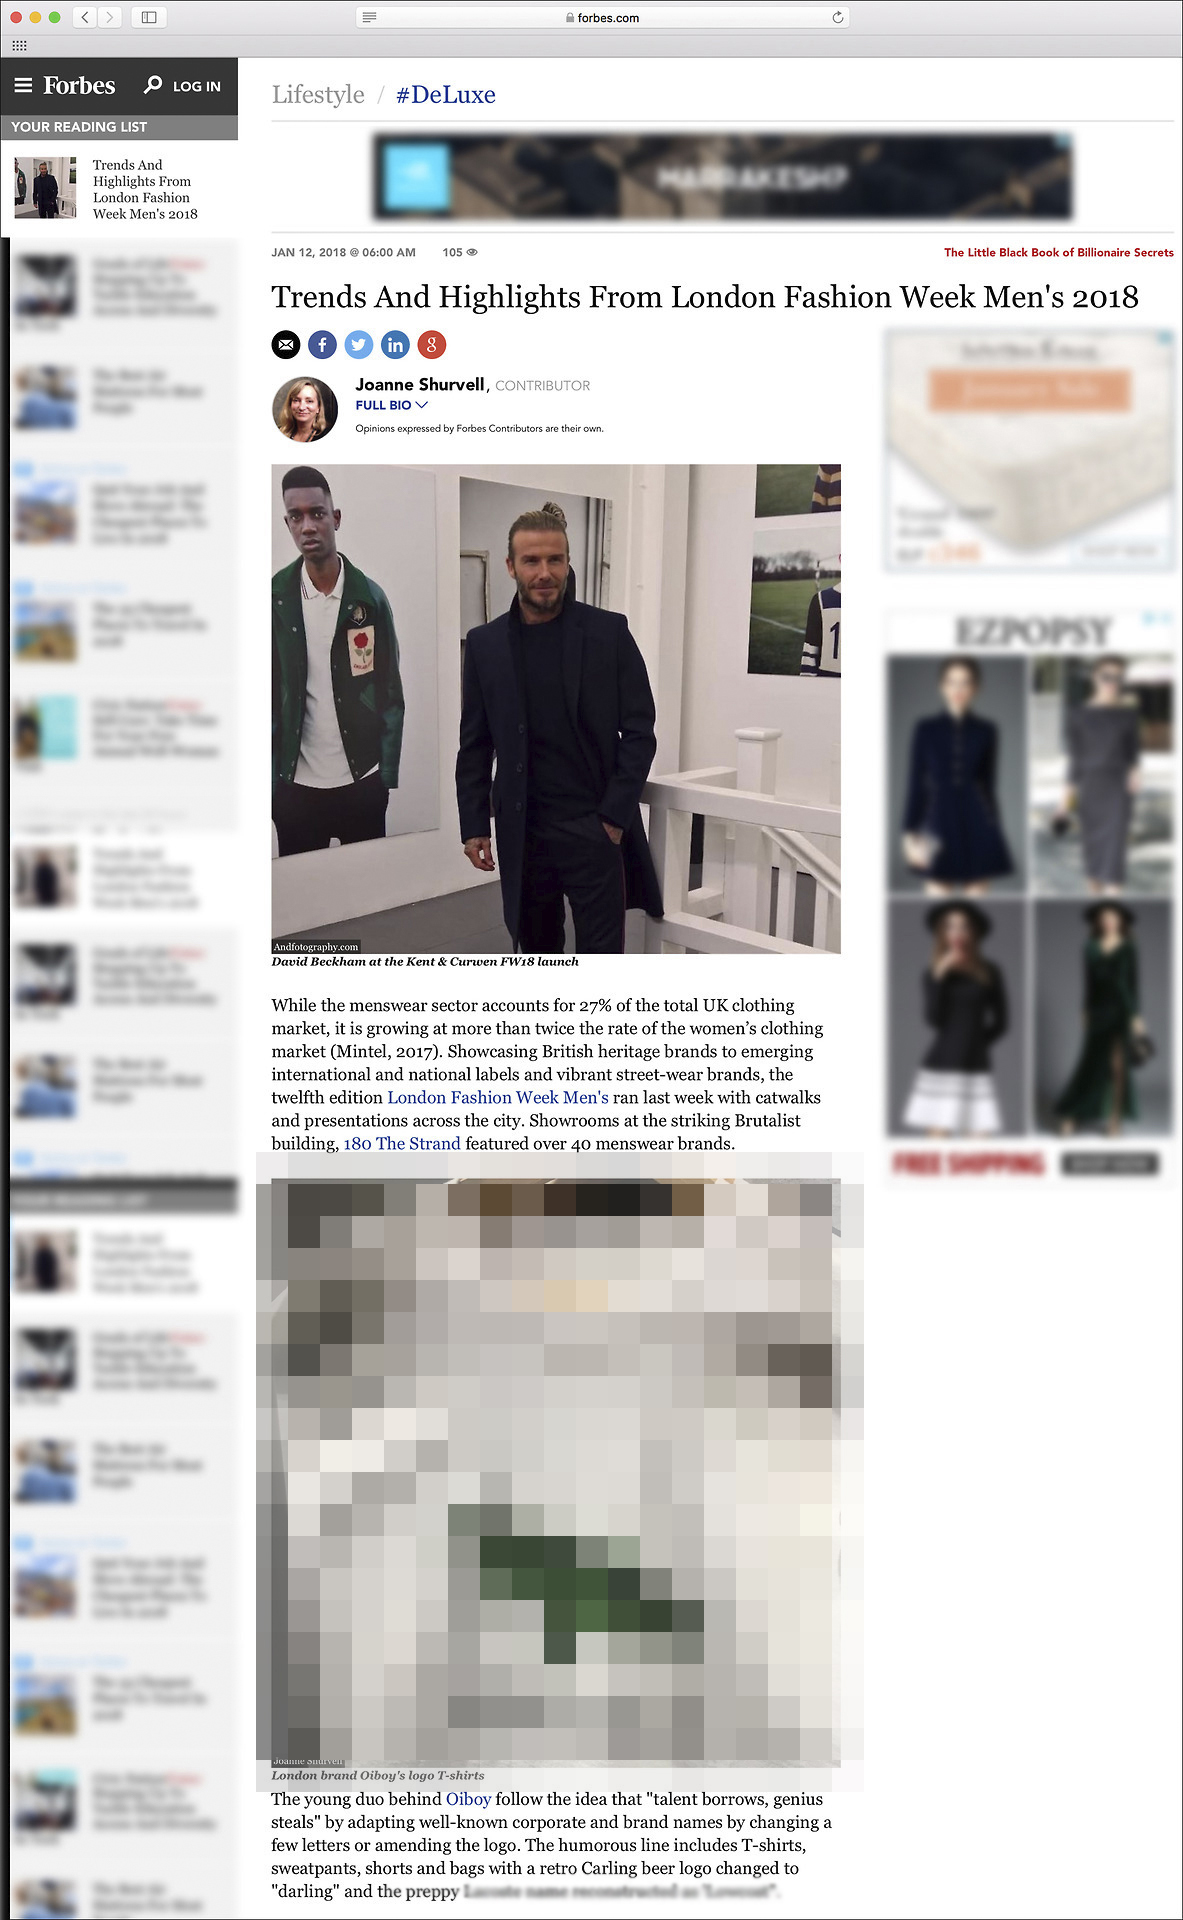 We are featured in the FORBES article: 'Trends And Highlights From London Fashion Week Men's 2018', read the article here:   https://www.forbes.com/sites/joanneshurvell/2018/01/12/trends-and-highlights-from-london-fashion-week-mens-2018/#47b86ce4342f